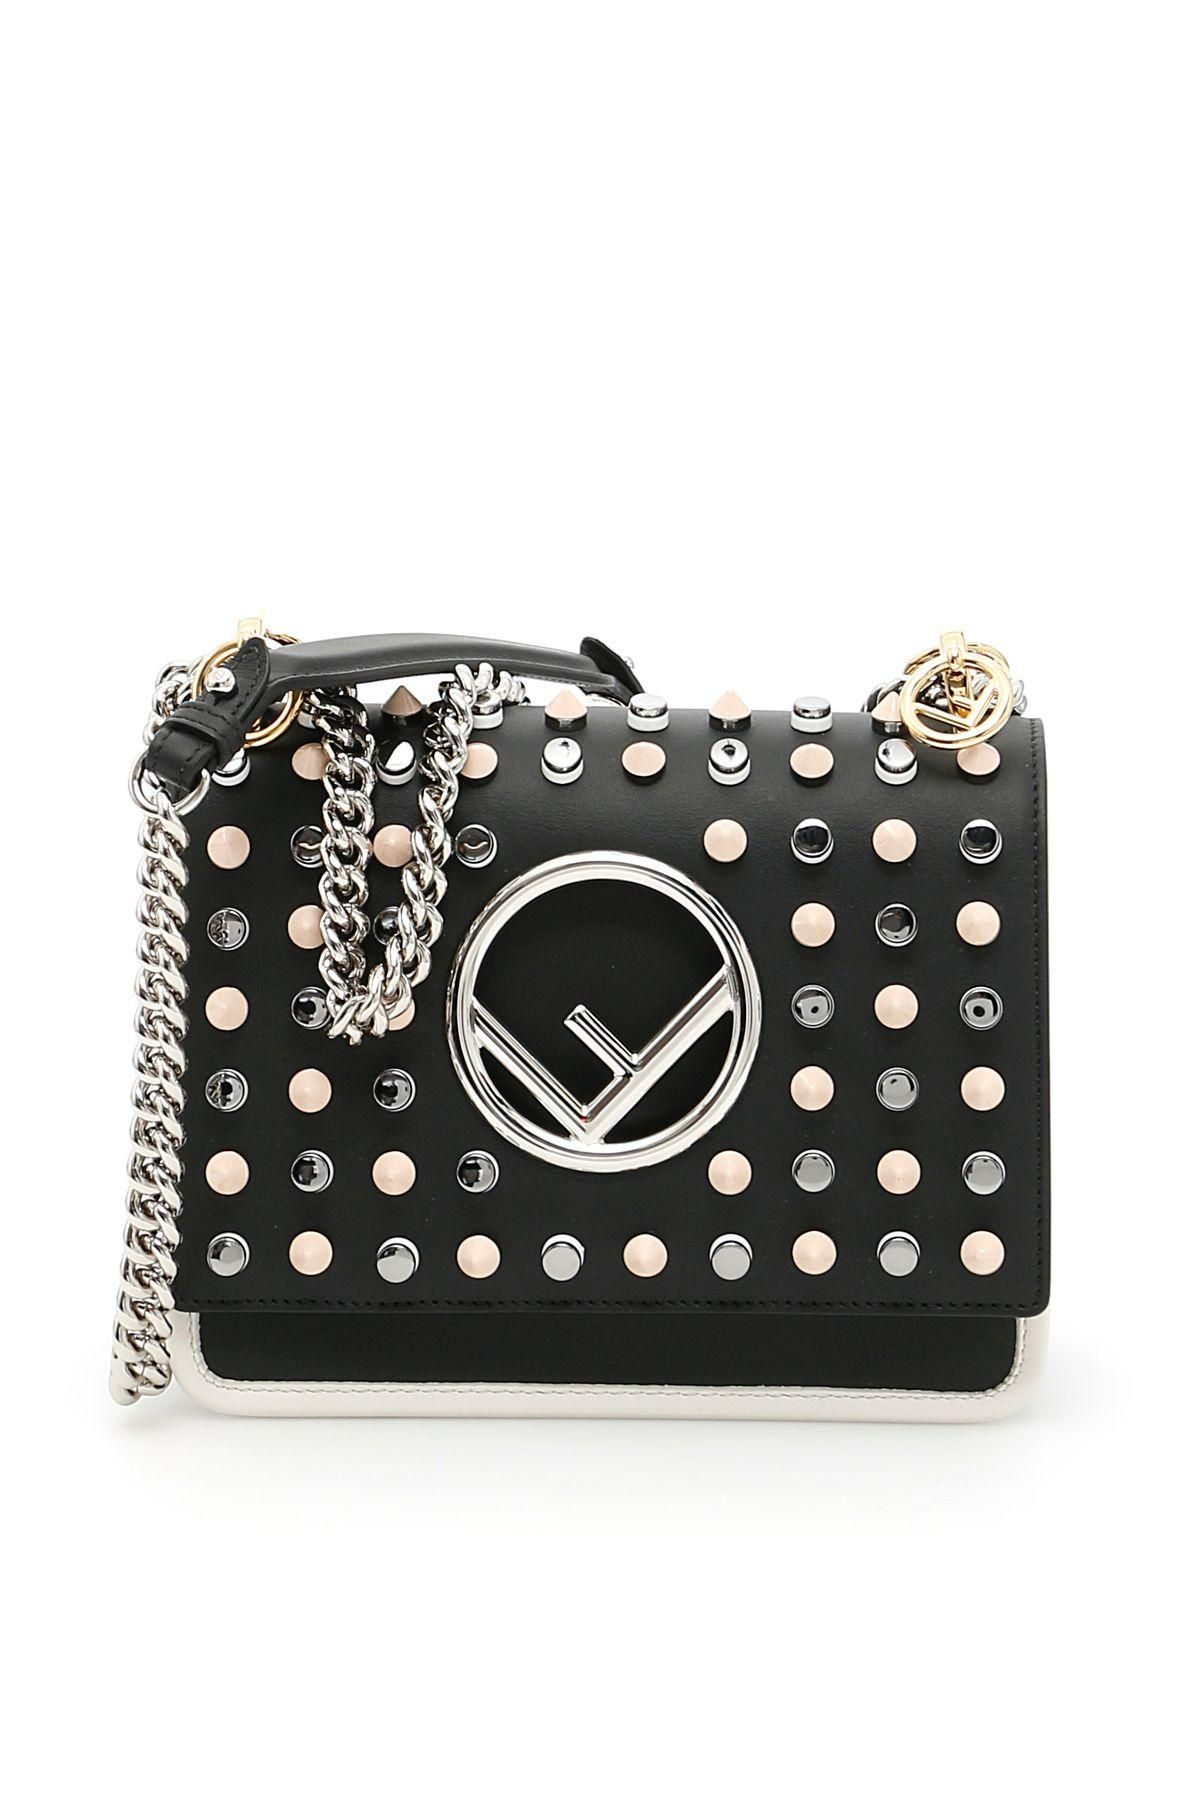 e3001b85fccf  Italist -  Fendi Small Kan I F Bag With Studs - AdoreWe.com